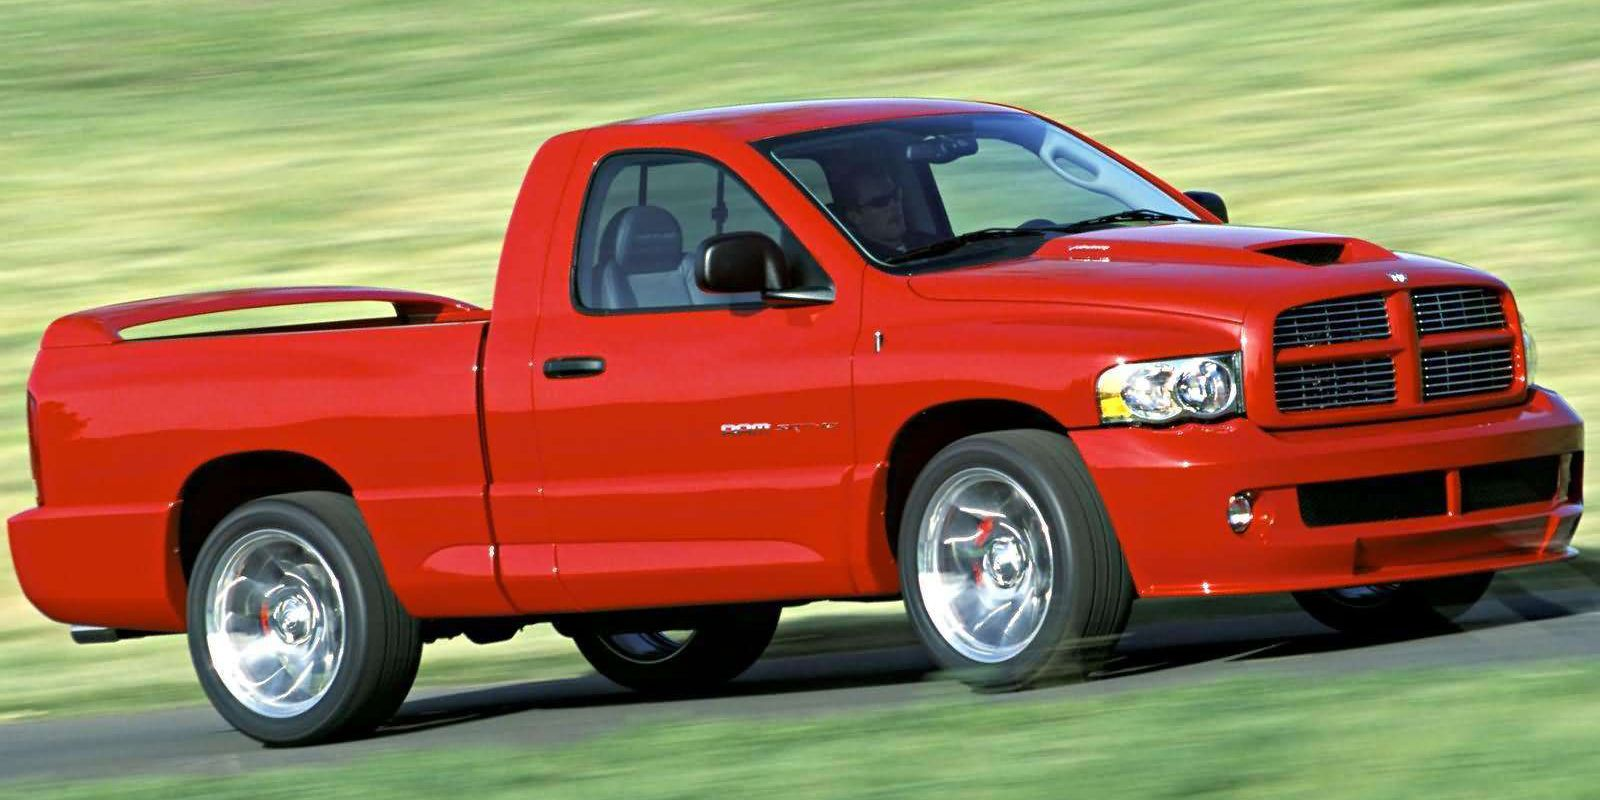 The Dodge Ram Srt 10 Was The First Hellcat